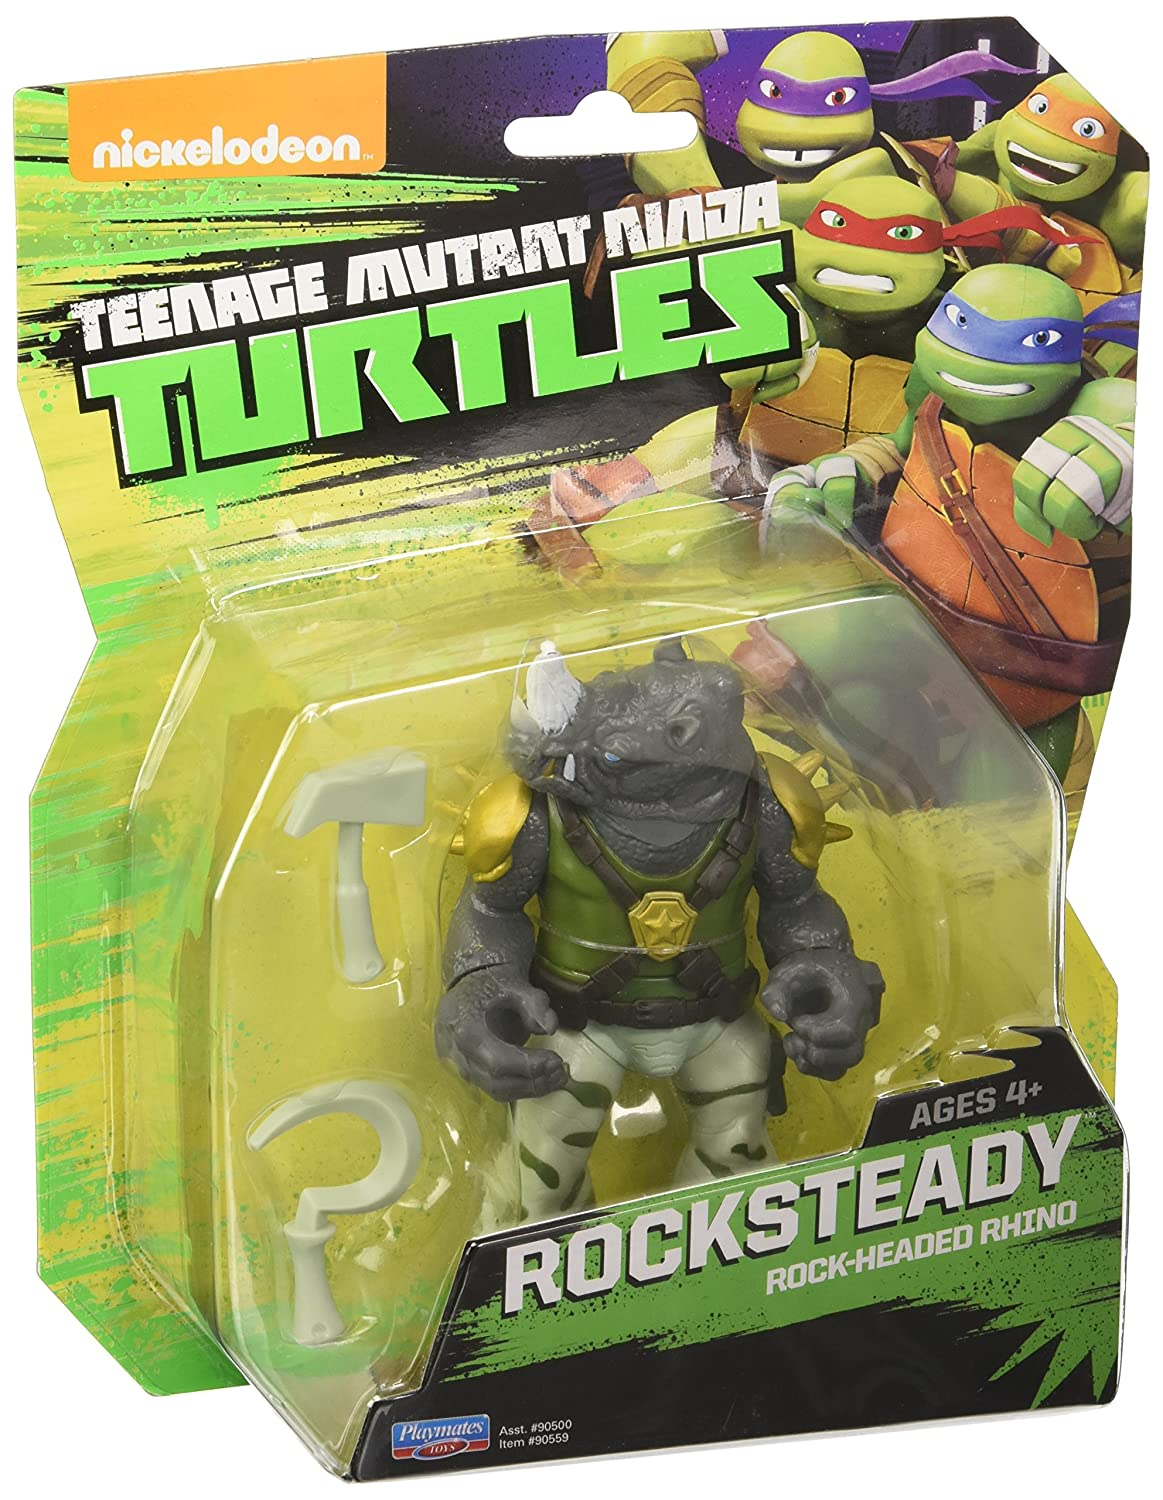 Teenage Mutant Ninja Turtles Figura de acción de Rocksteady ...